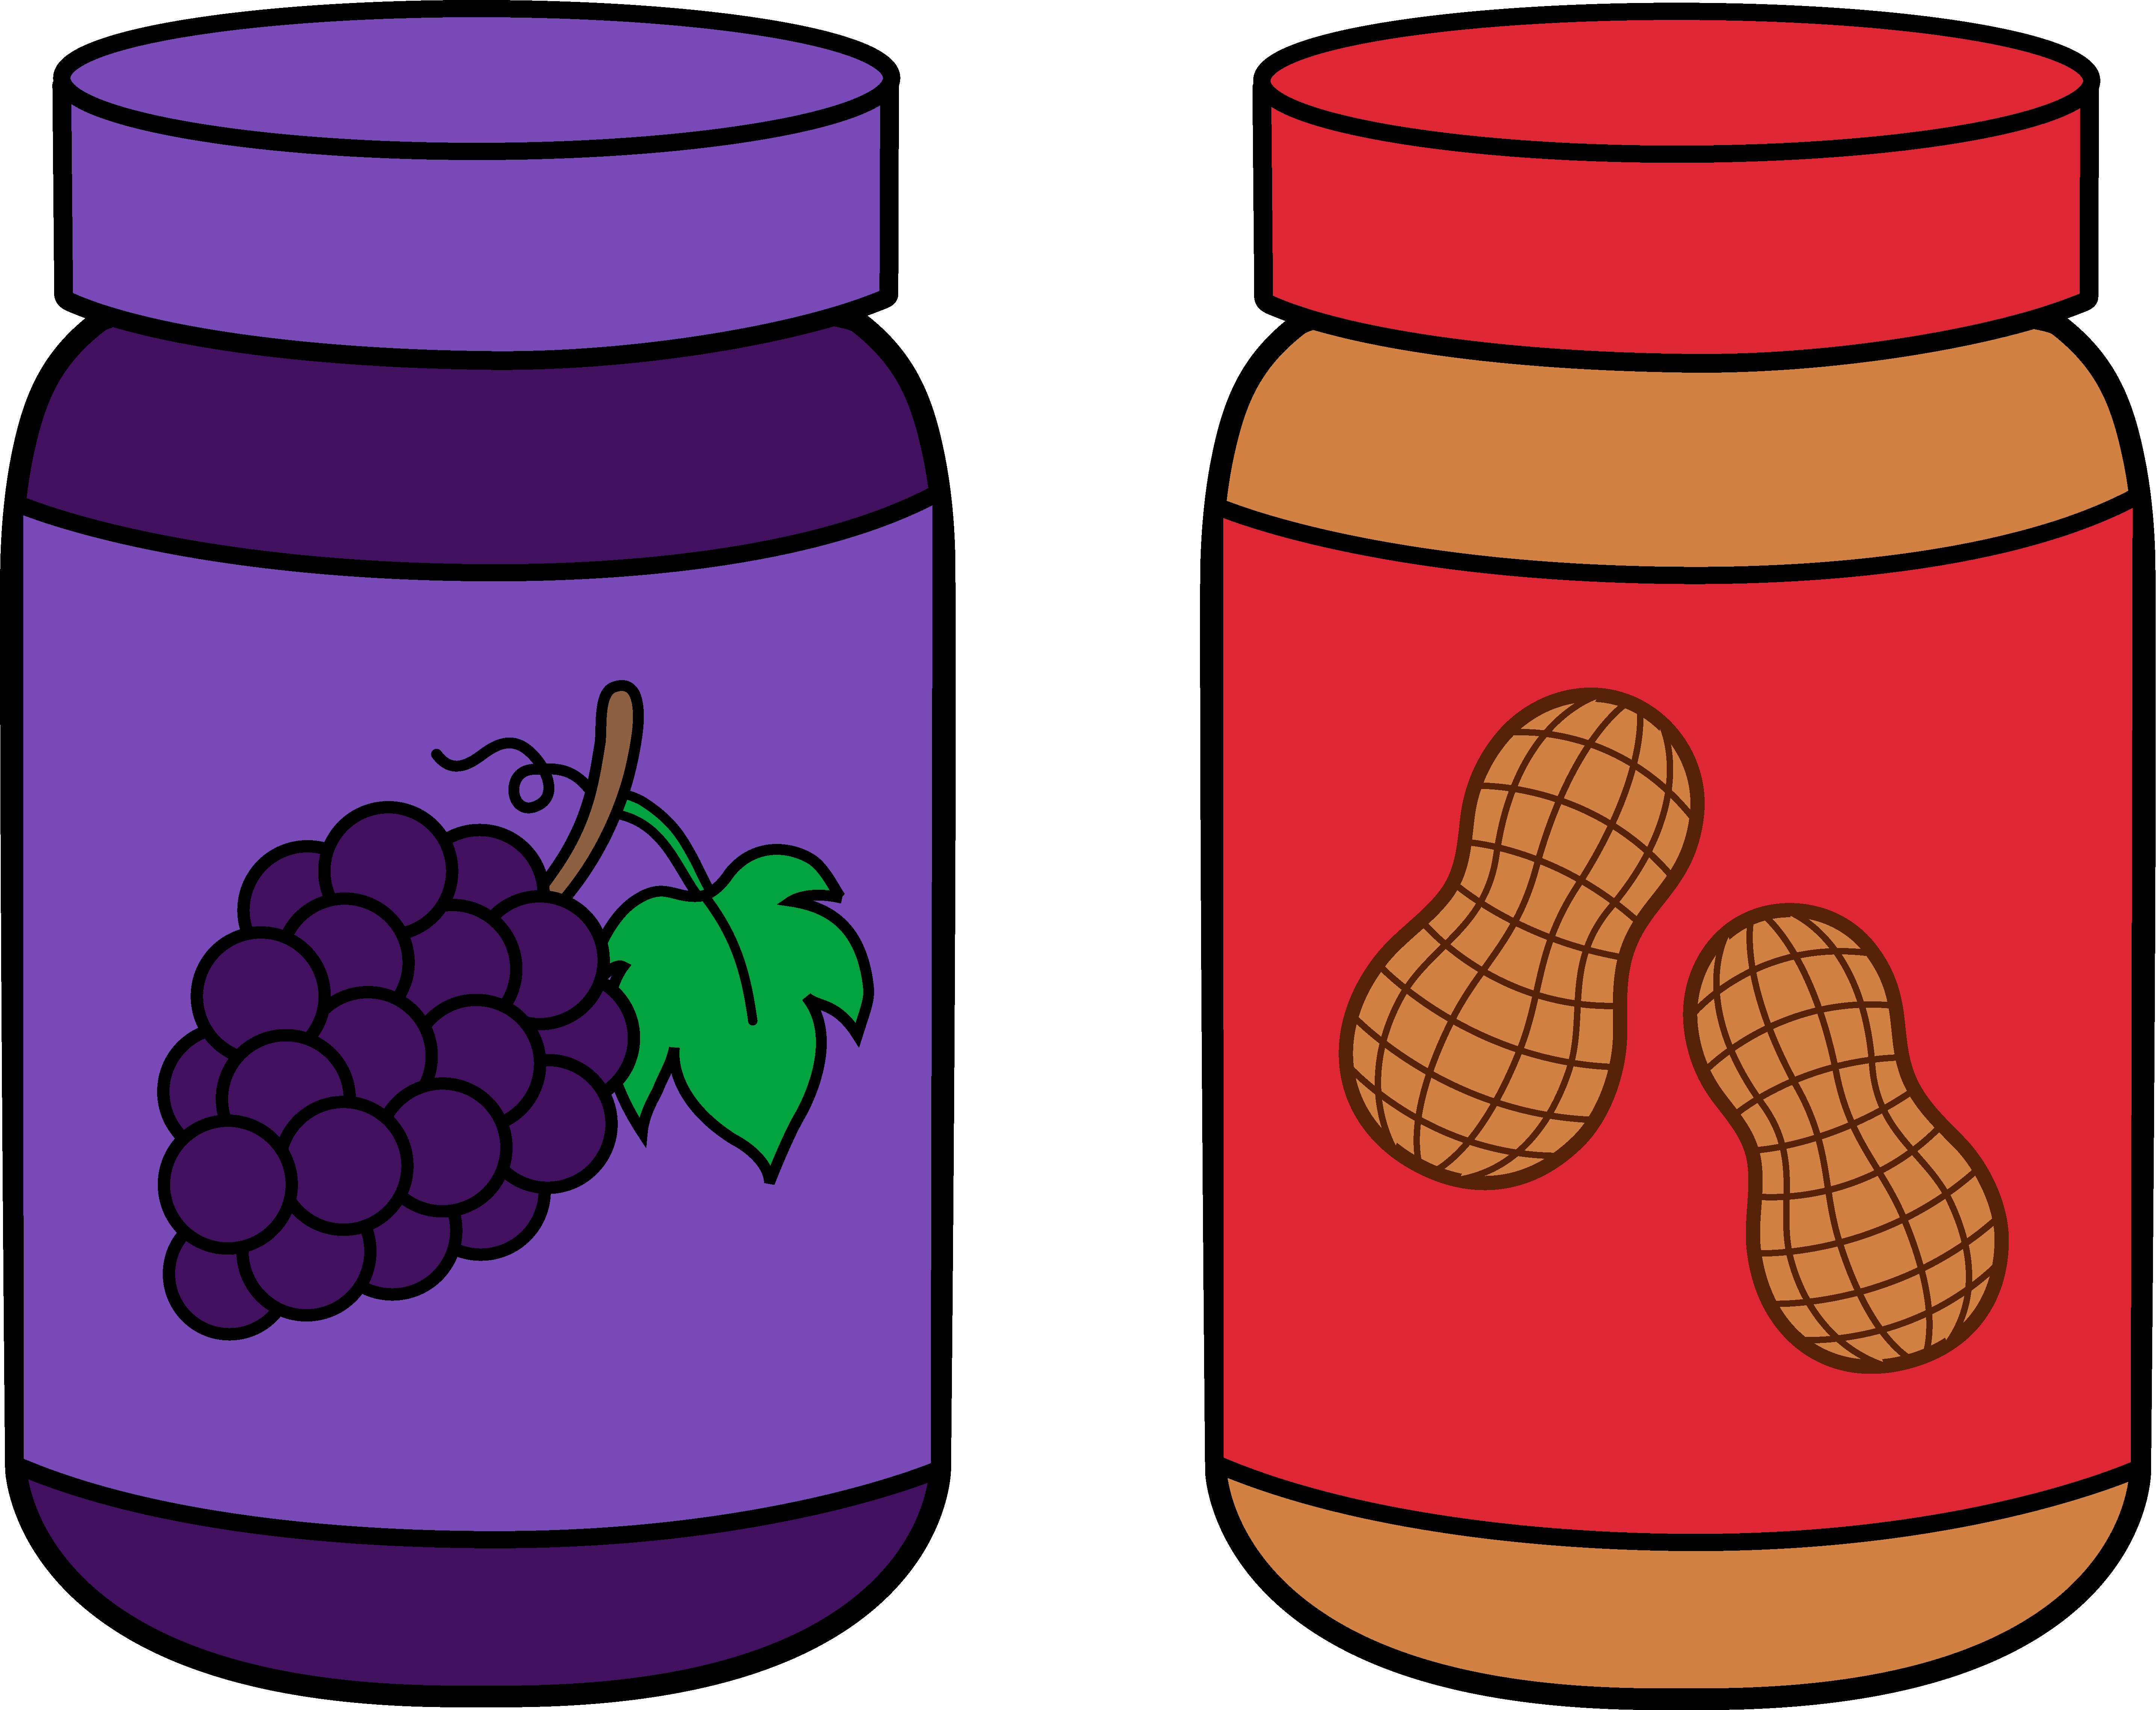 Peanut butter and jelly public domain free clipart clip art library library Jars Of Peanut Butter And Jelly Free clipart free image clip art library library